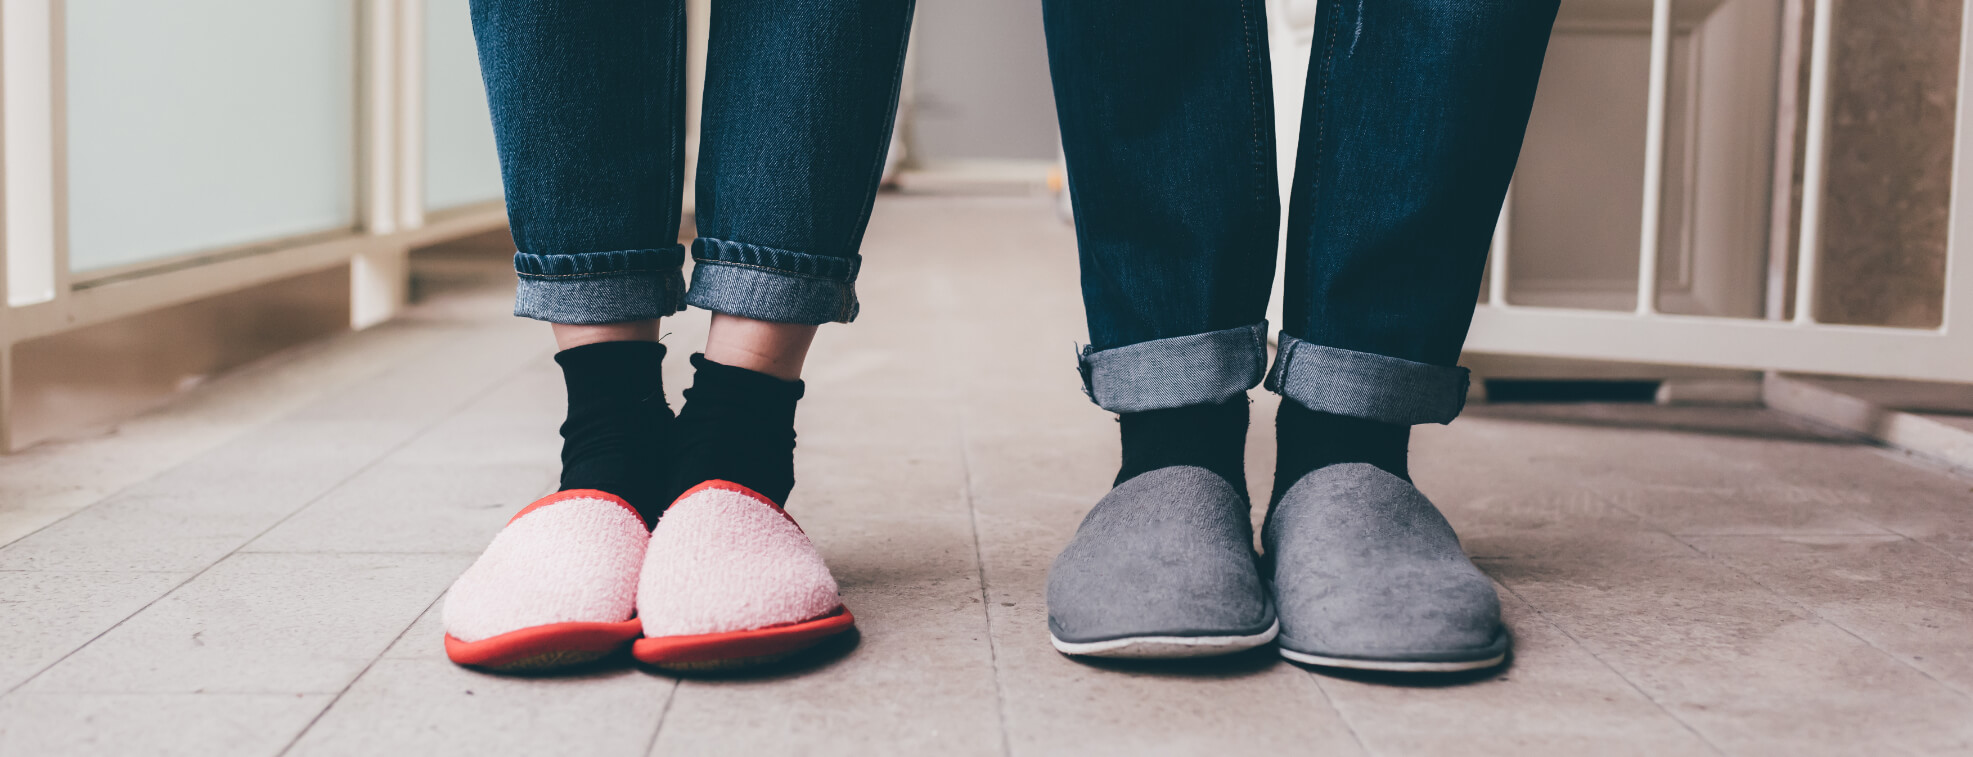 Slippers will keep your Valentine's feet warm